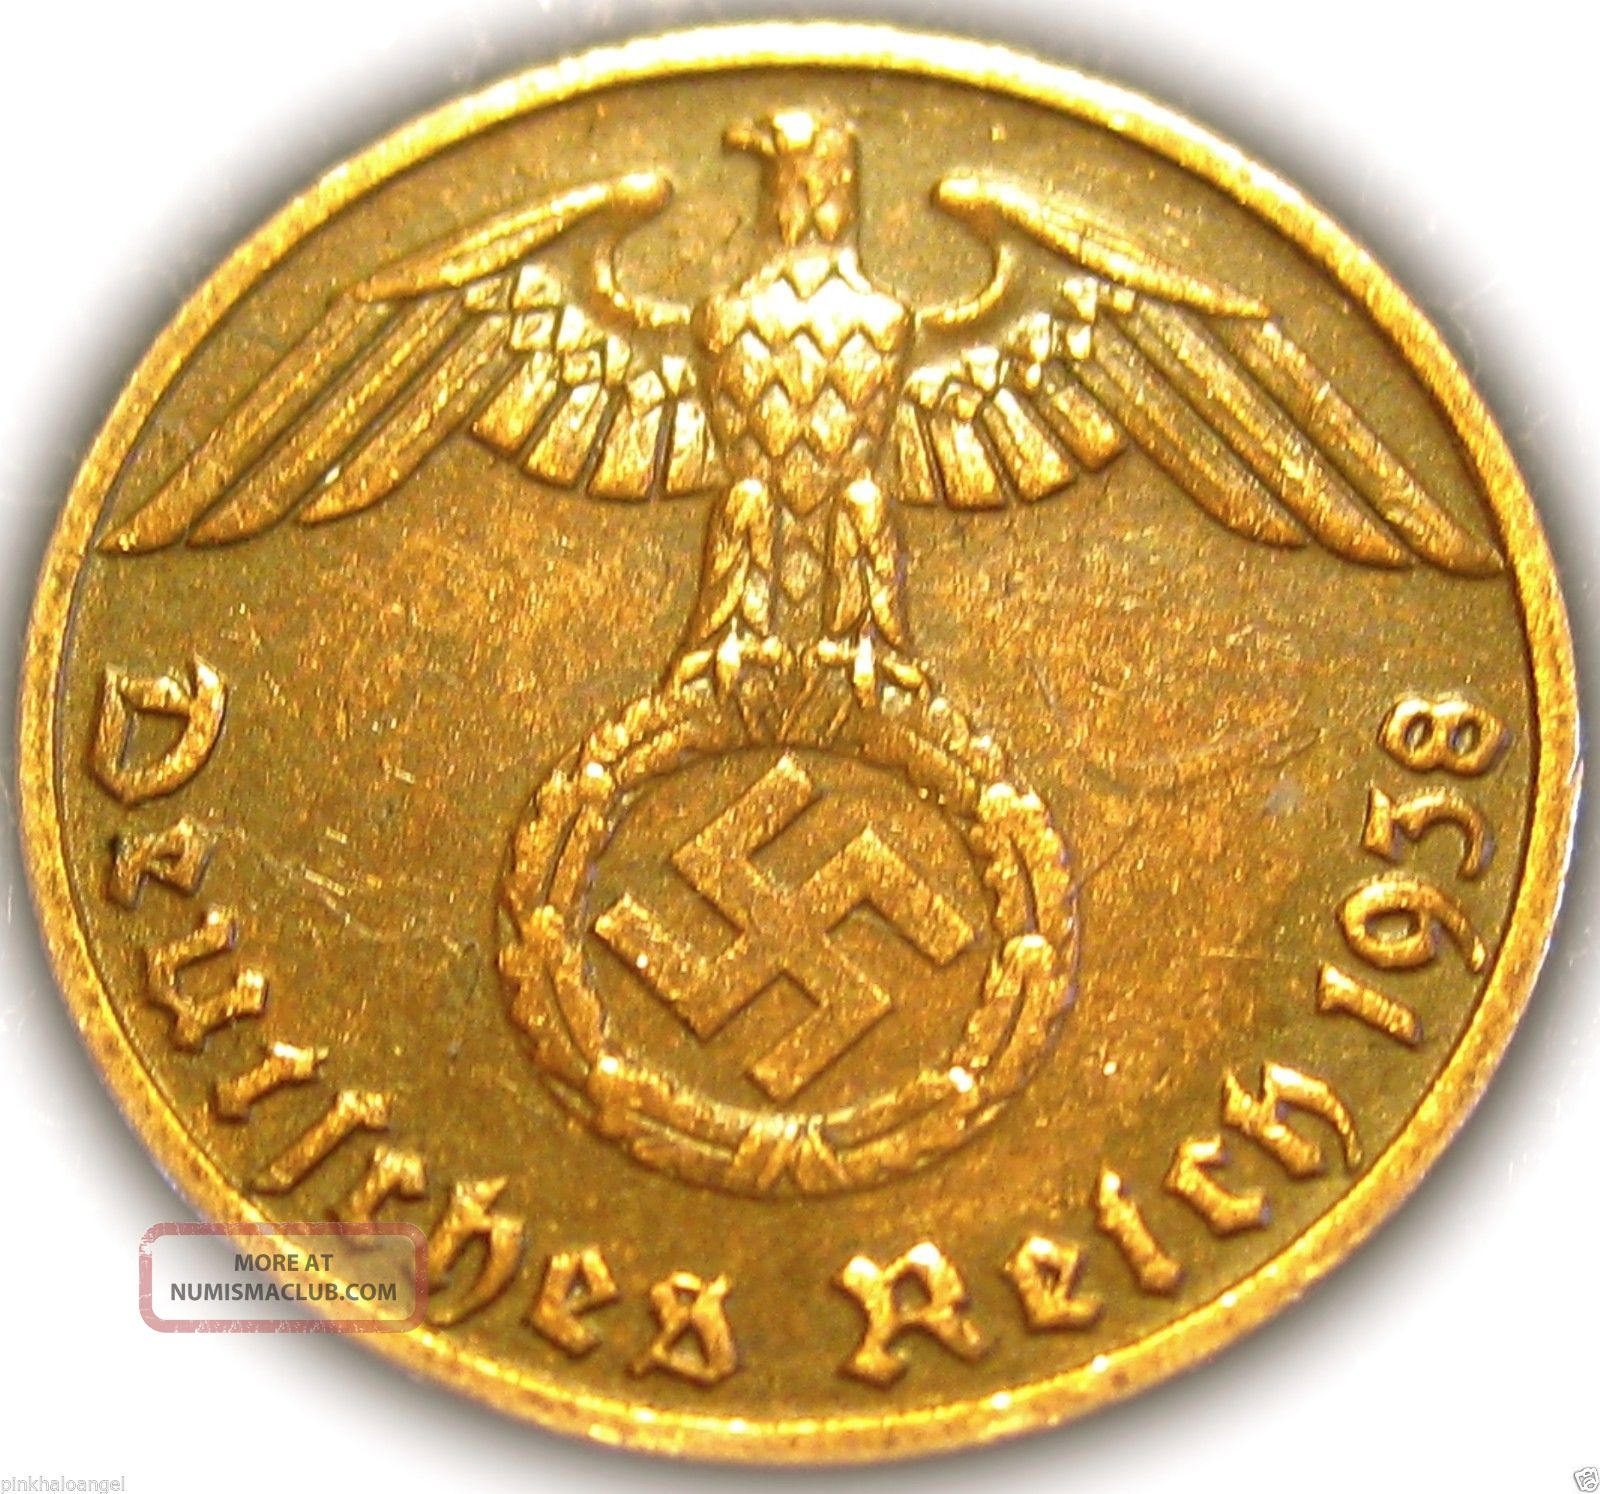 ♡ German 3rd Reich 1938e Rp Coin W/ Swastika - Nazi Germany Ww 2 - Rare Coin Germany photo